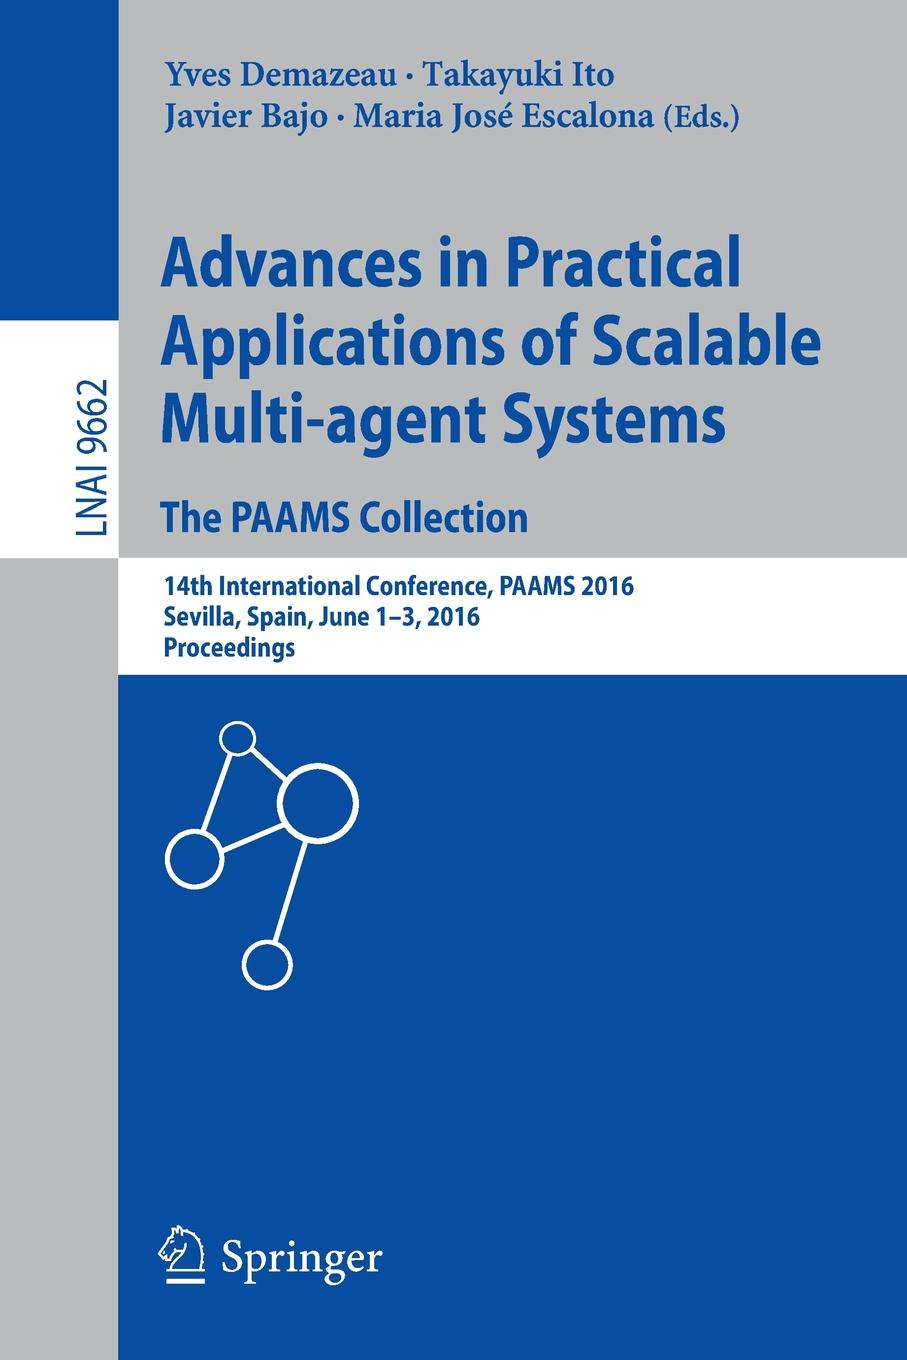 Advances in Practical Applications of Scalable Multi-agent Systems. The PAAMS Collection. 14th International Conference, PAAMS 2016, Sevilla, Spain, June 1-3, 2016, Proceedings рычкова е сост история кружева история страны сборник научных статей конференции history of lace history of the country international scientific and practical conference proceedings